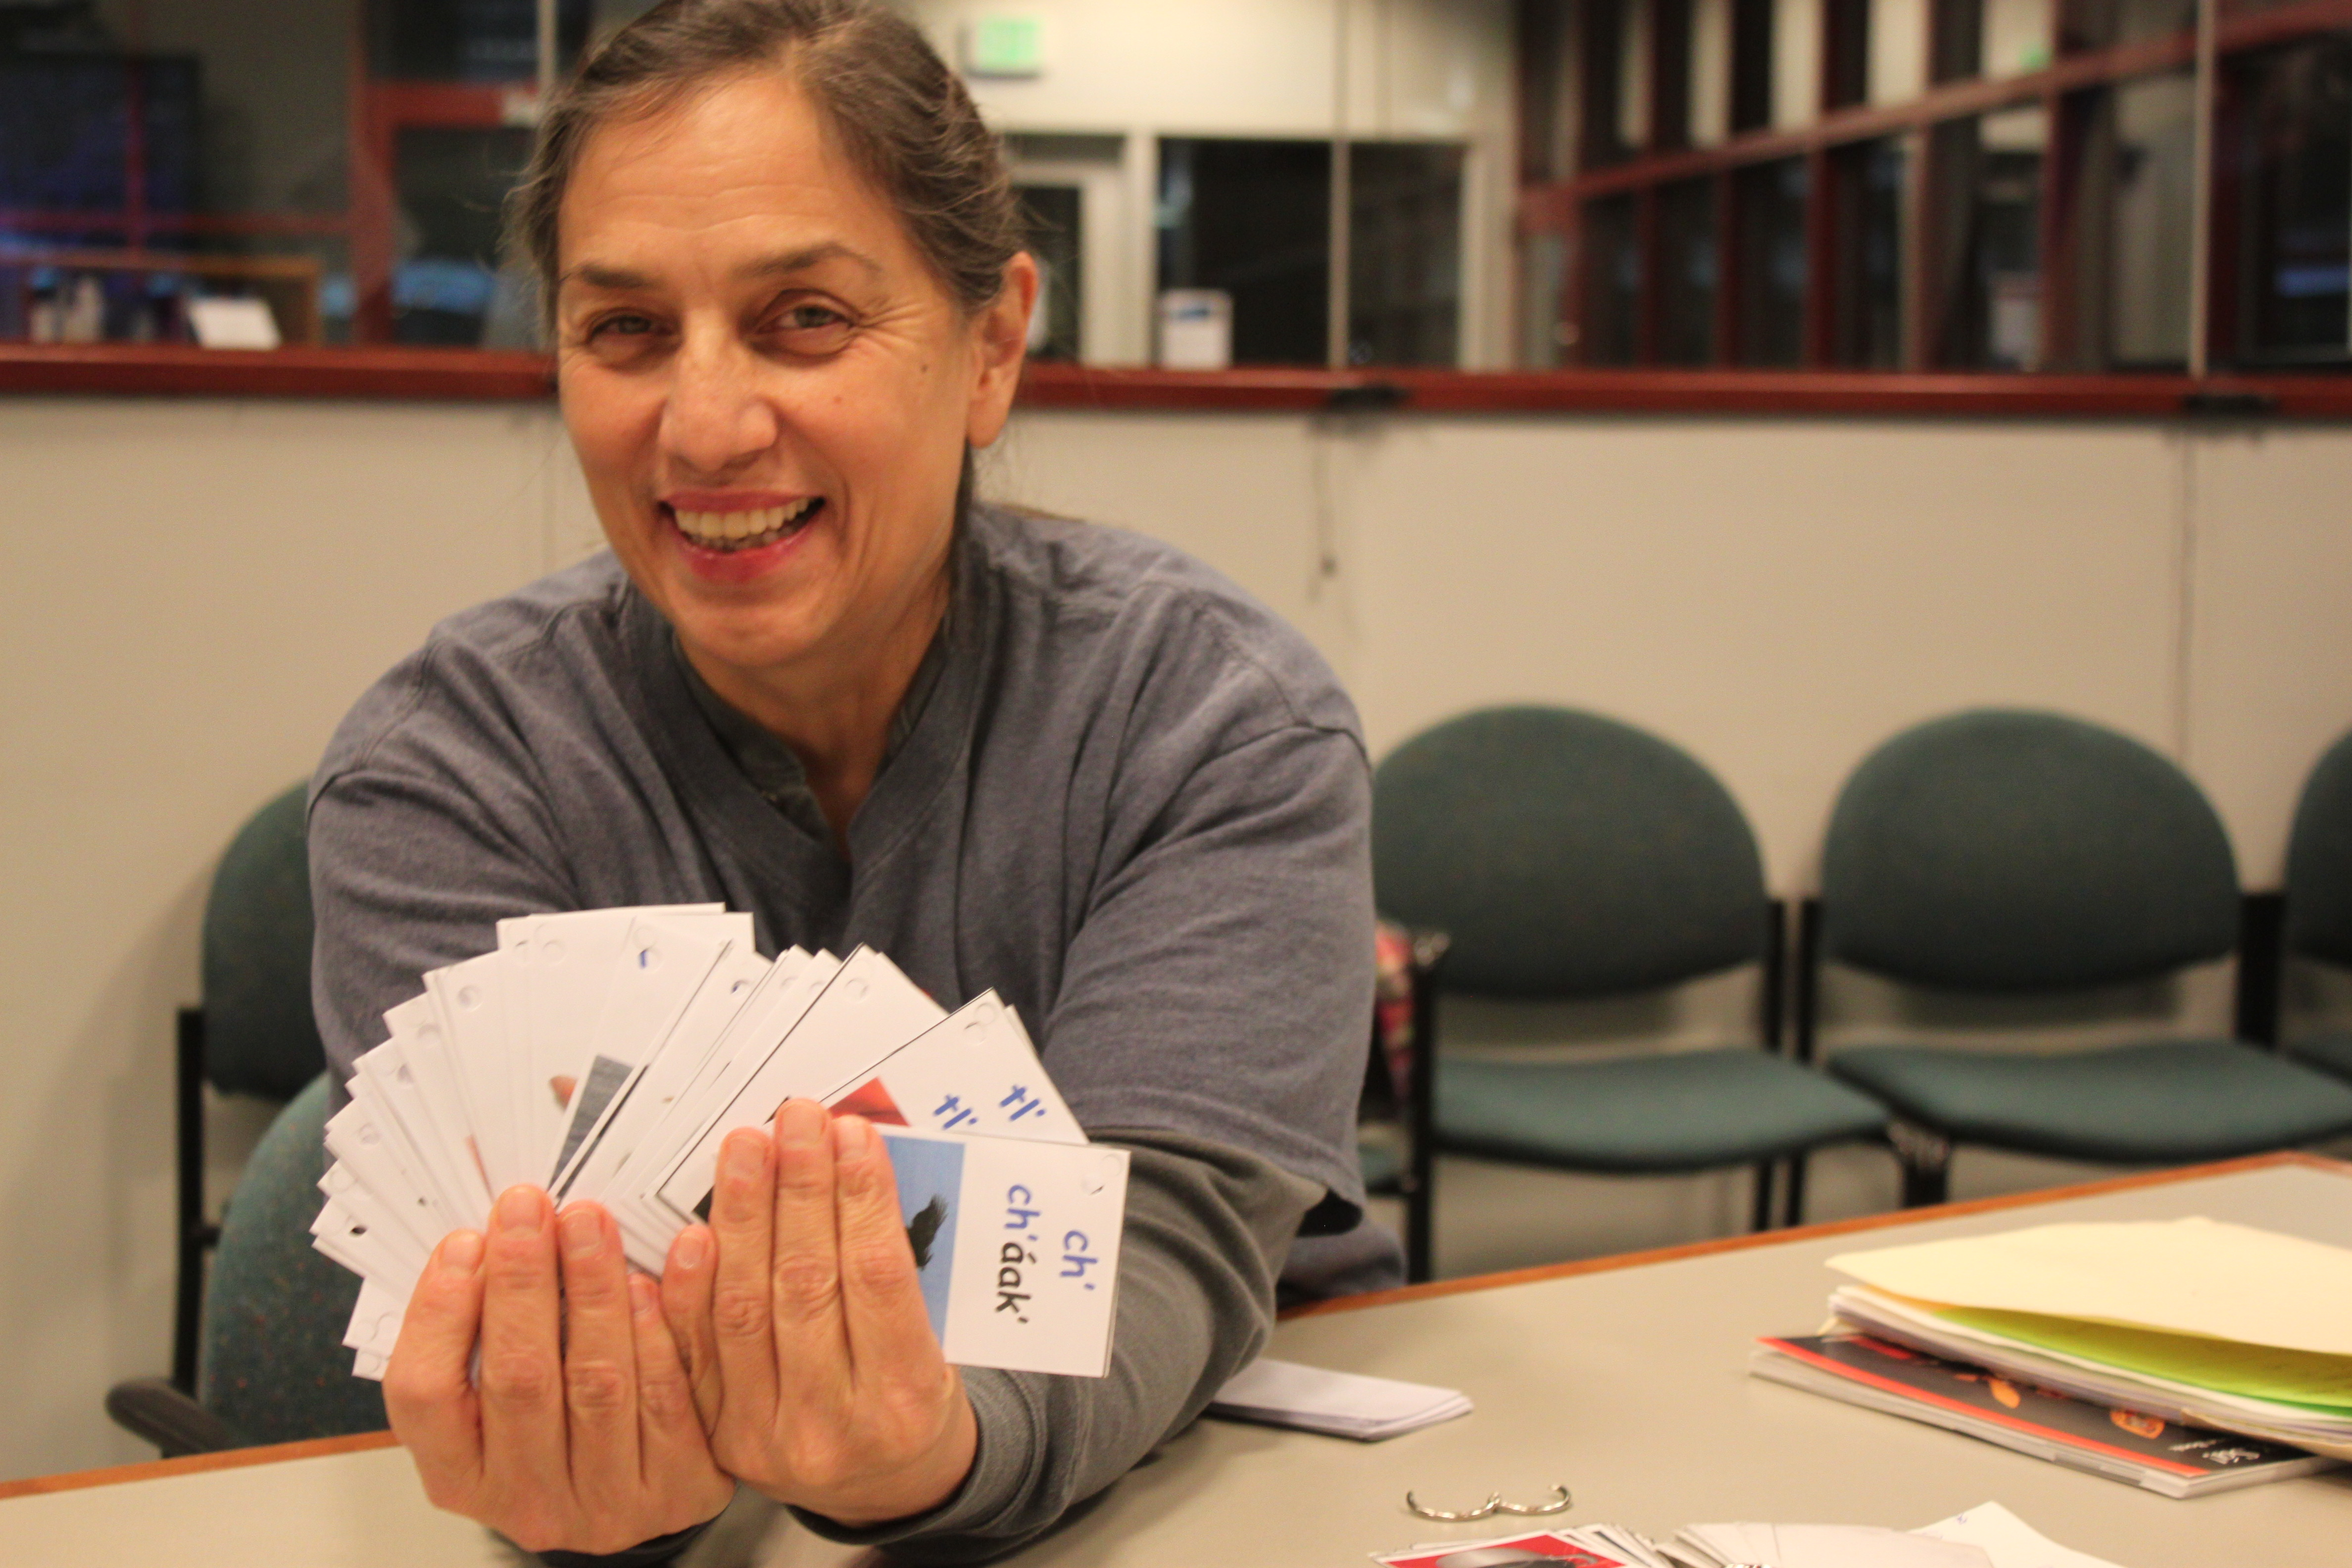 Nancy Keen holds out Tlingit flash cards. (Photo by Lisa Phu/KTOO)